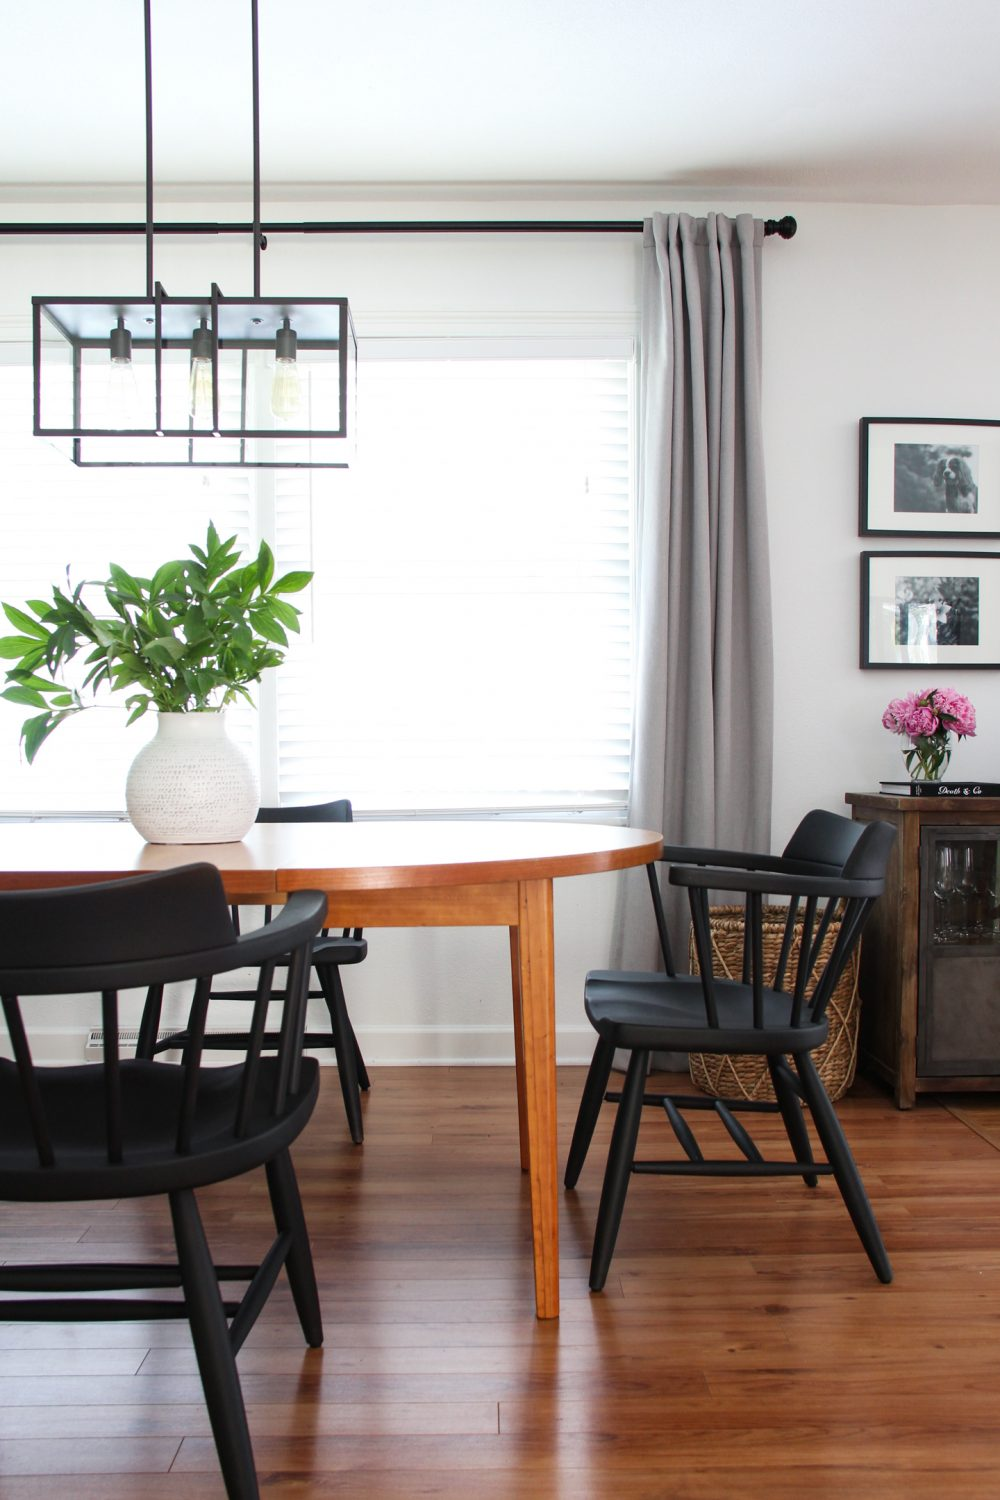 Black spindle chairs in dining room   Lumber Loves Lace   lumberloveslace.com